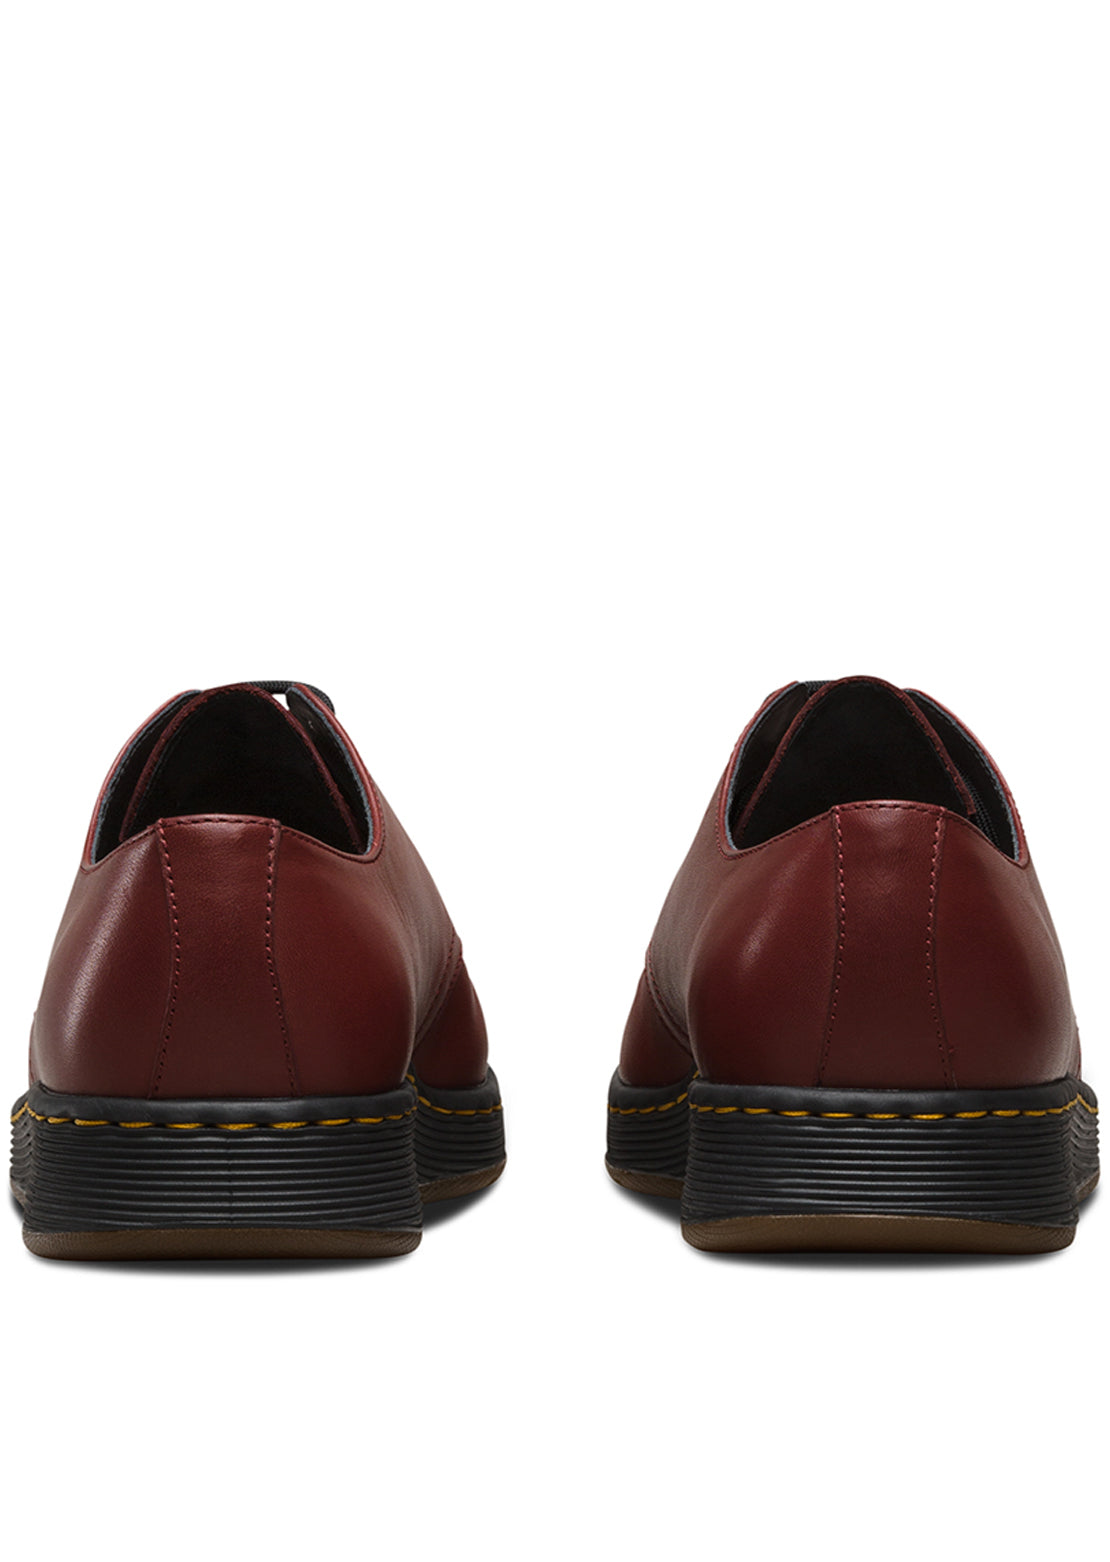 Dr. Martens Men's Cavendish Shoes